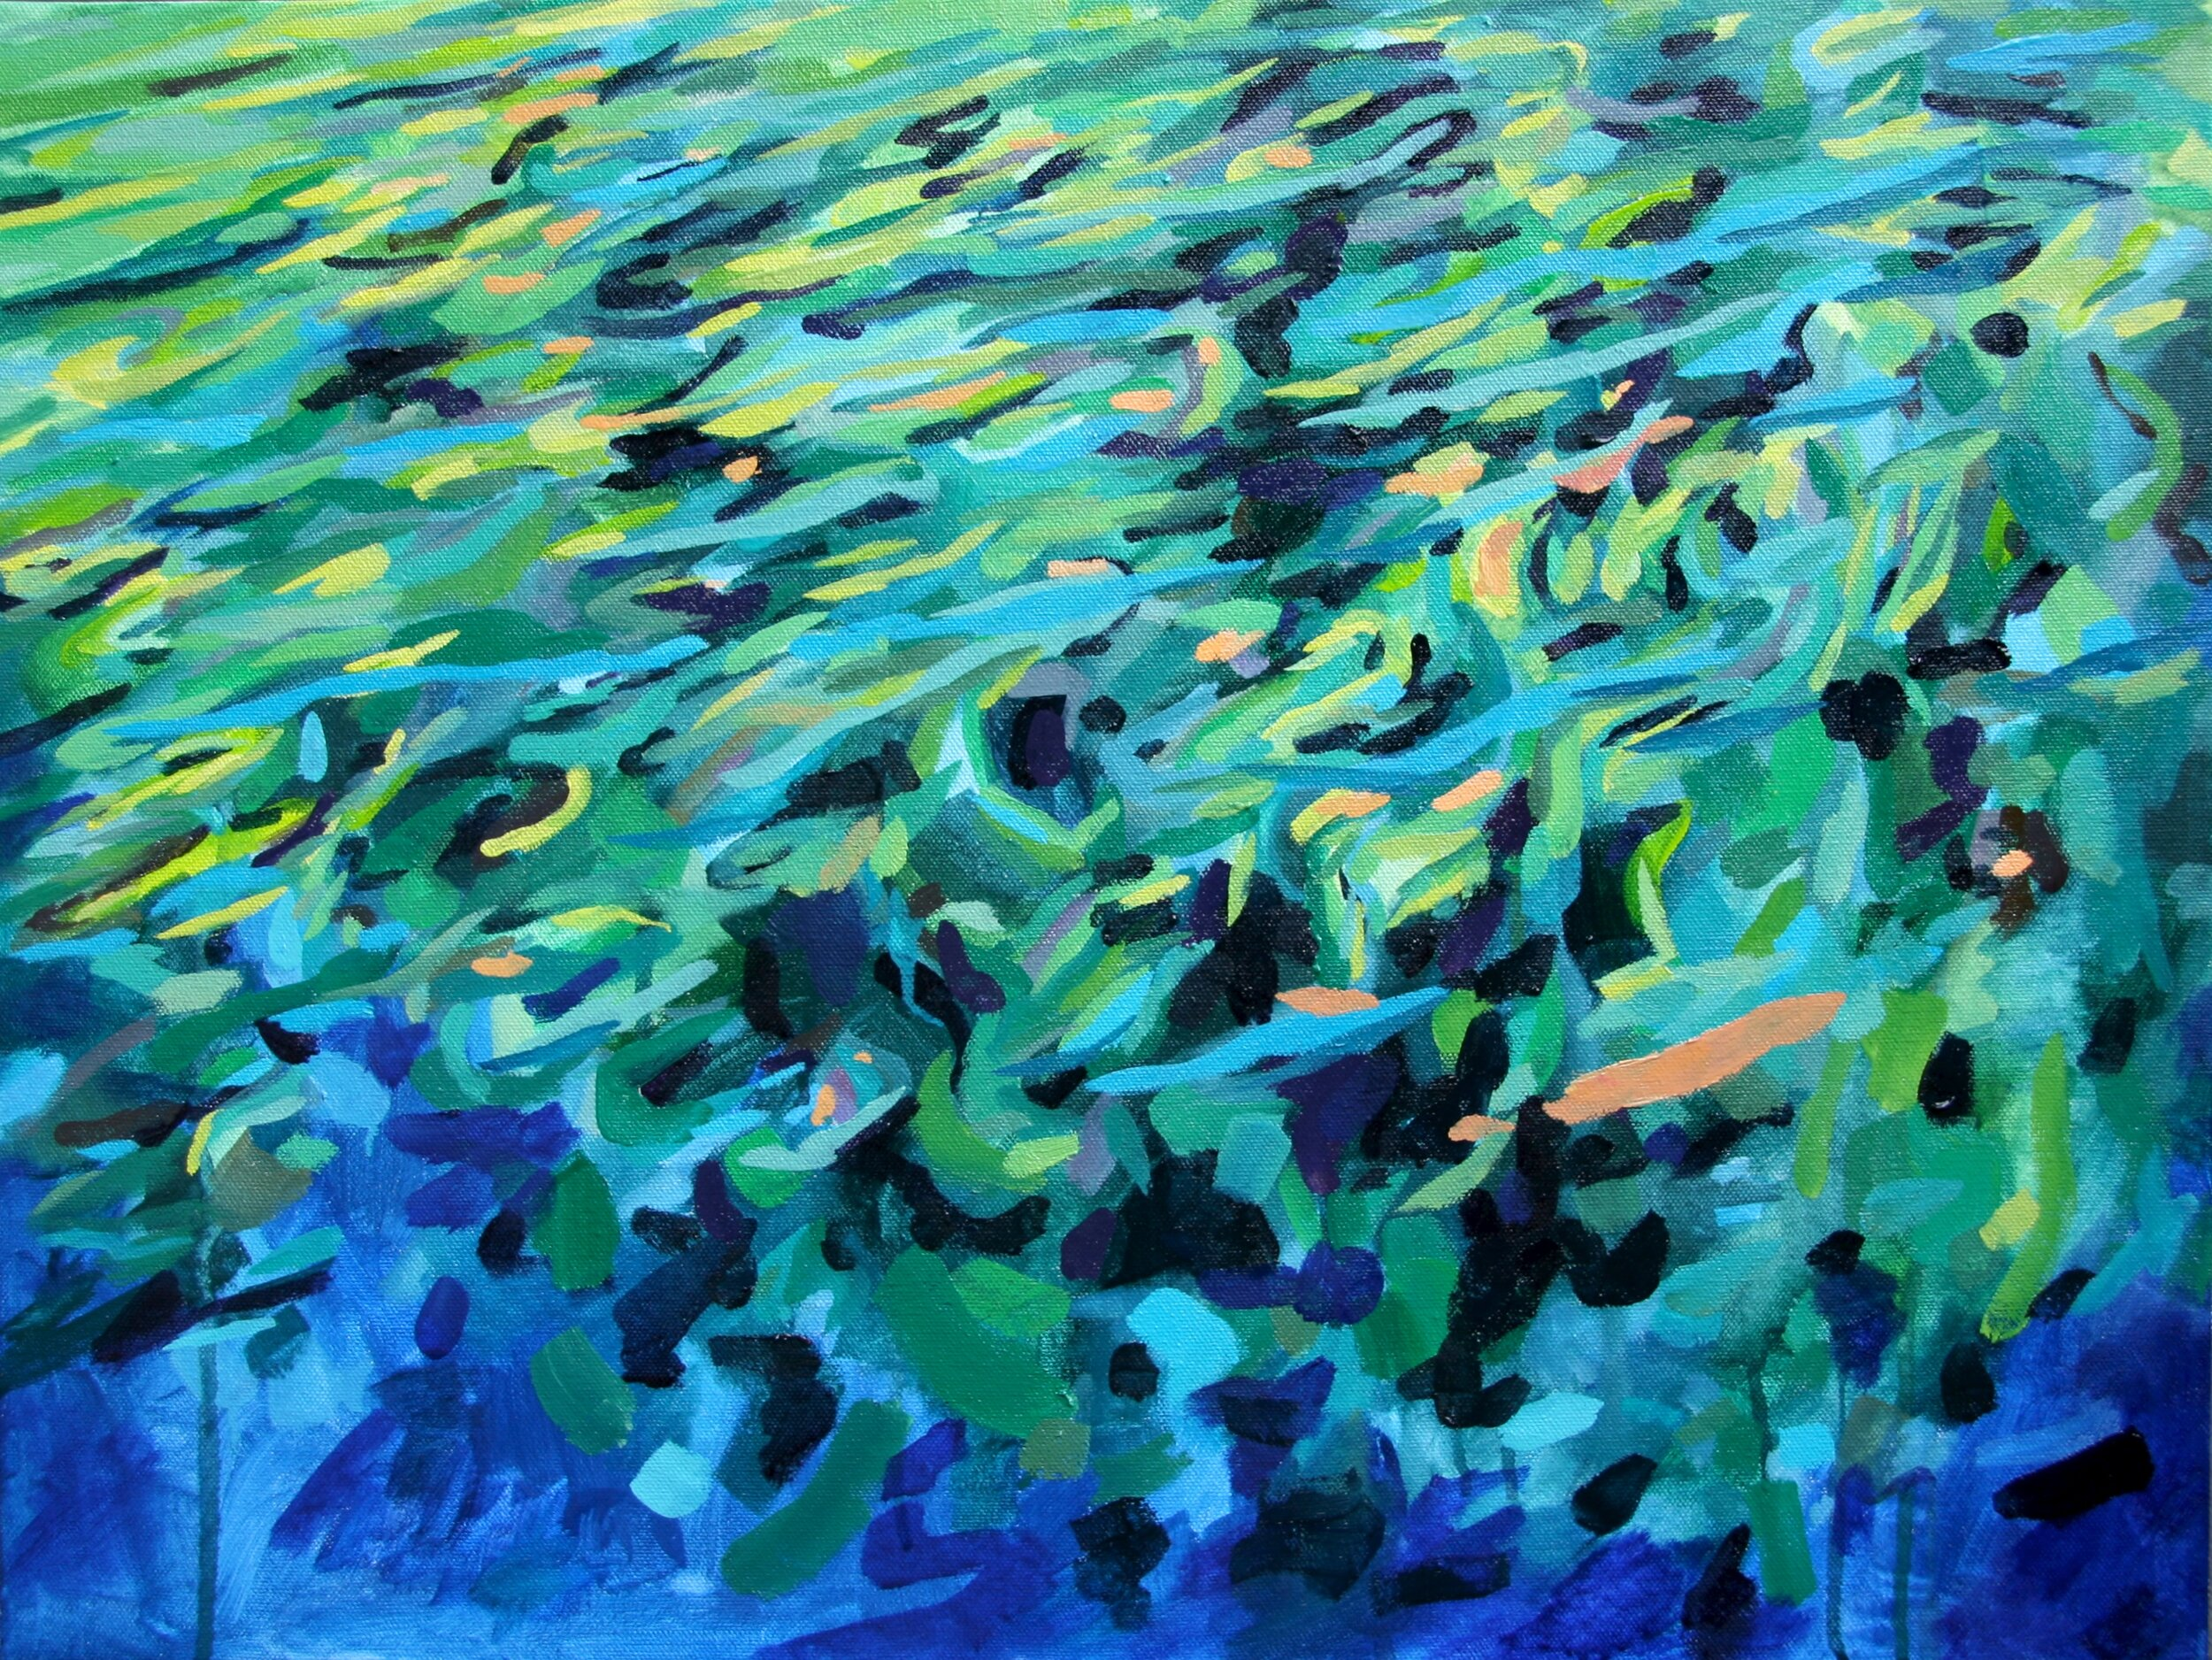 """'Cove'  2014  24"""" x 18""""  water soluble oil on canvas  sold"""